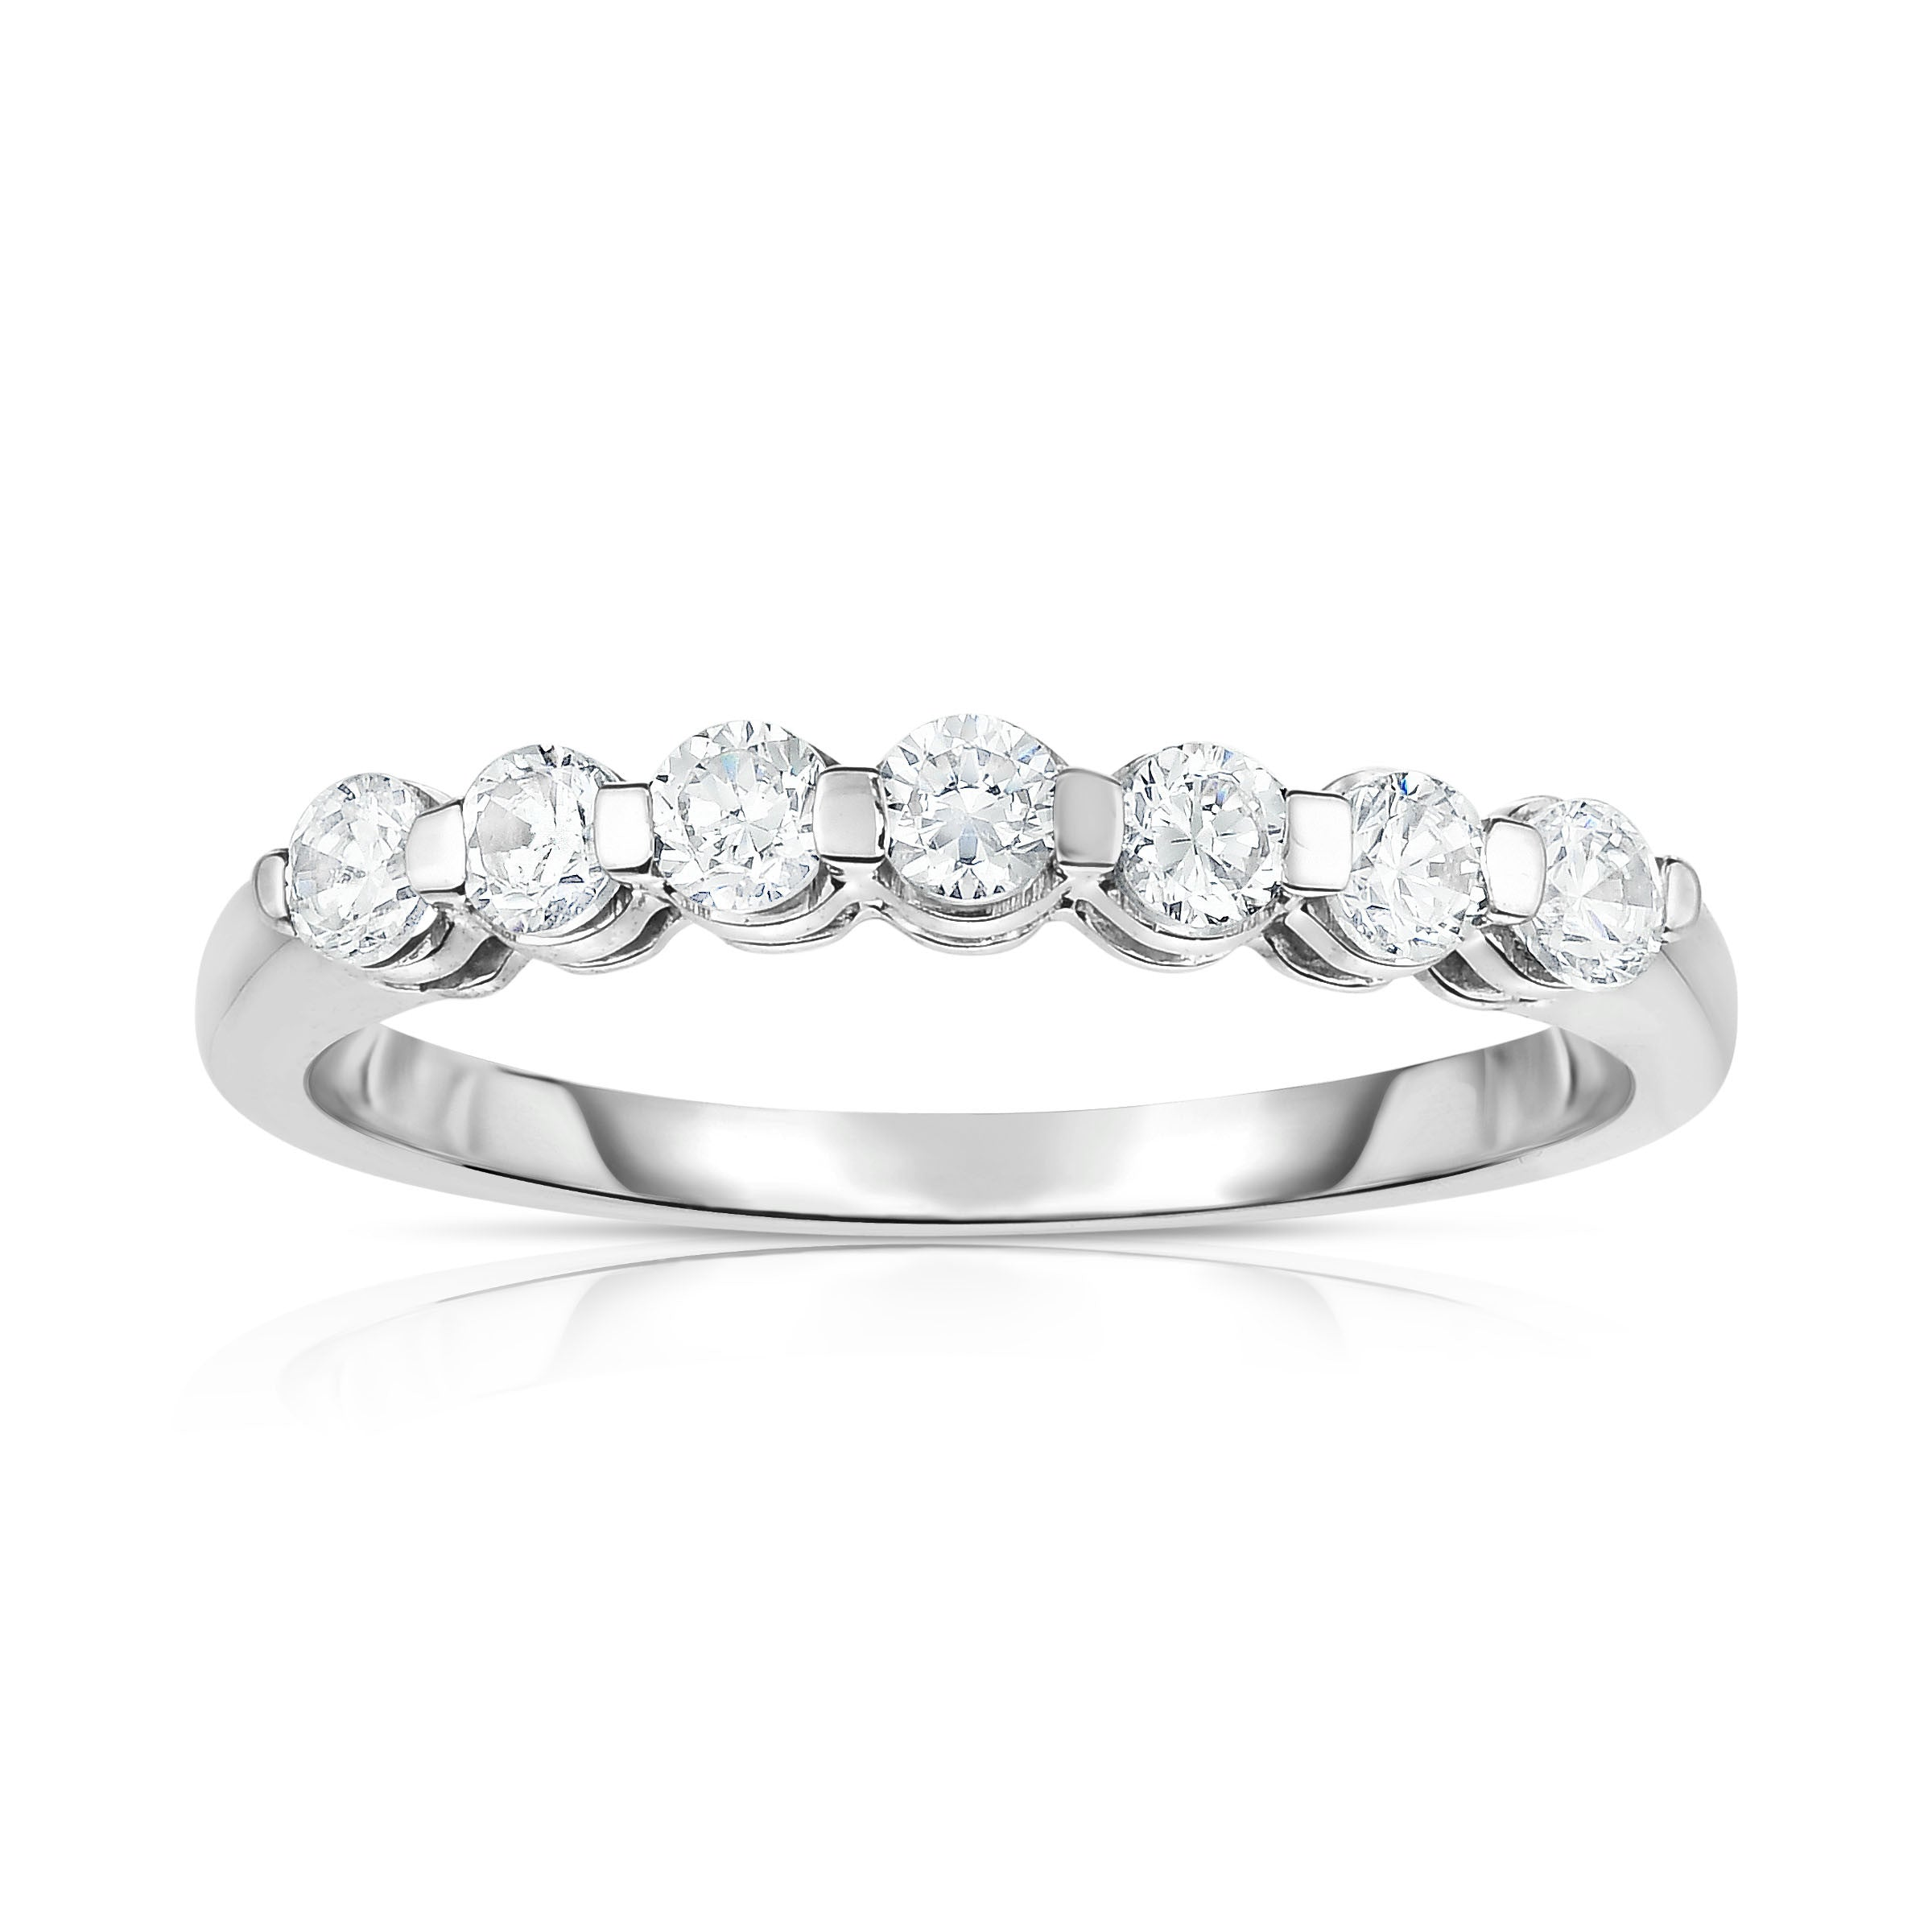 stone prong carat nei engagement diamonds products group single silver ring shared rings